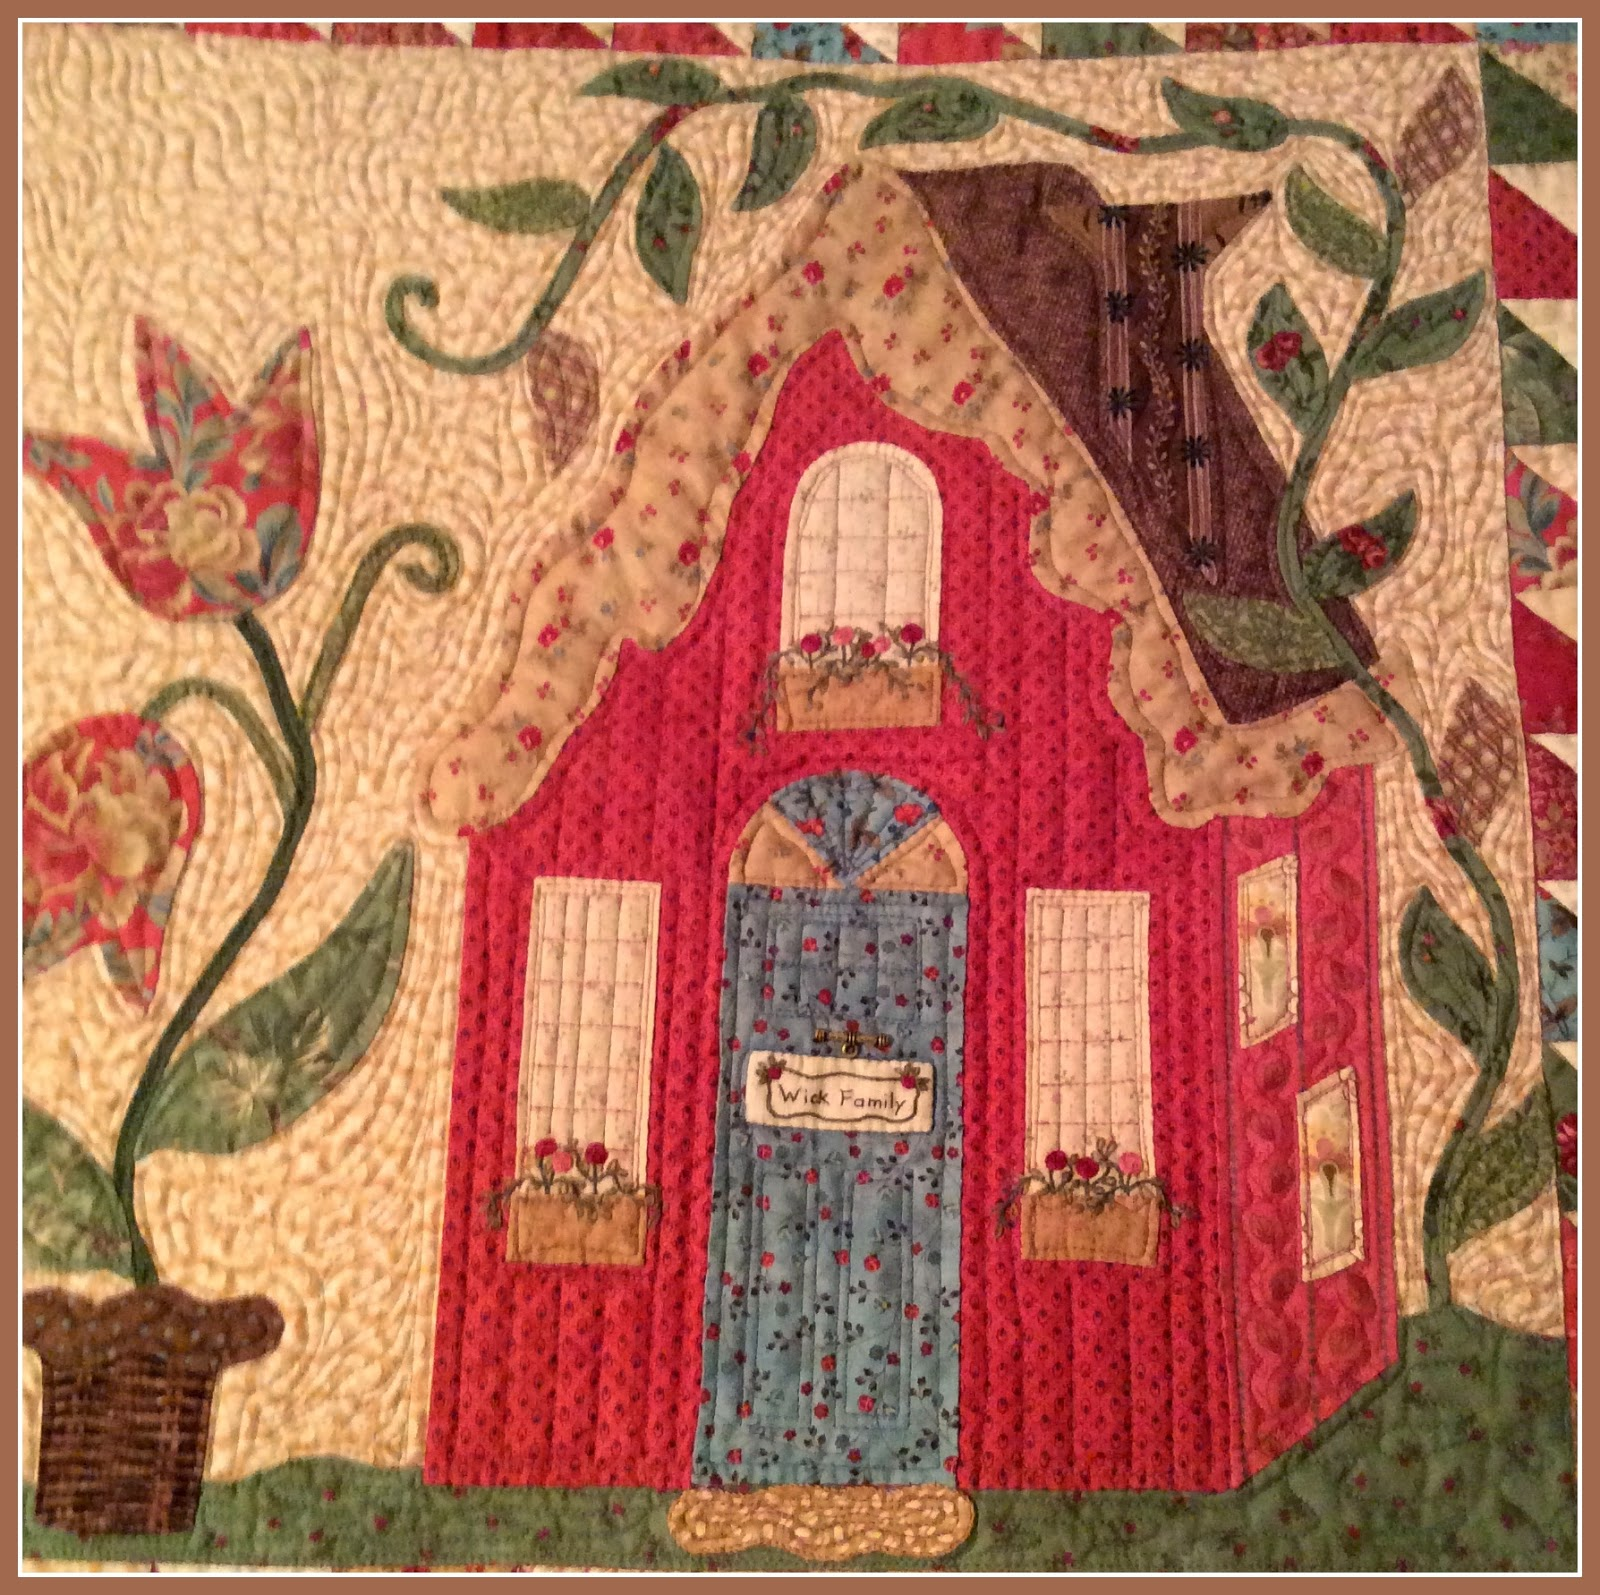 Karen's Quilts, Crows and Cardinals: Needle Turn Applique Catch Up ... : the quilting needle - Adamdwight.com